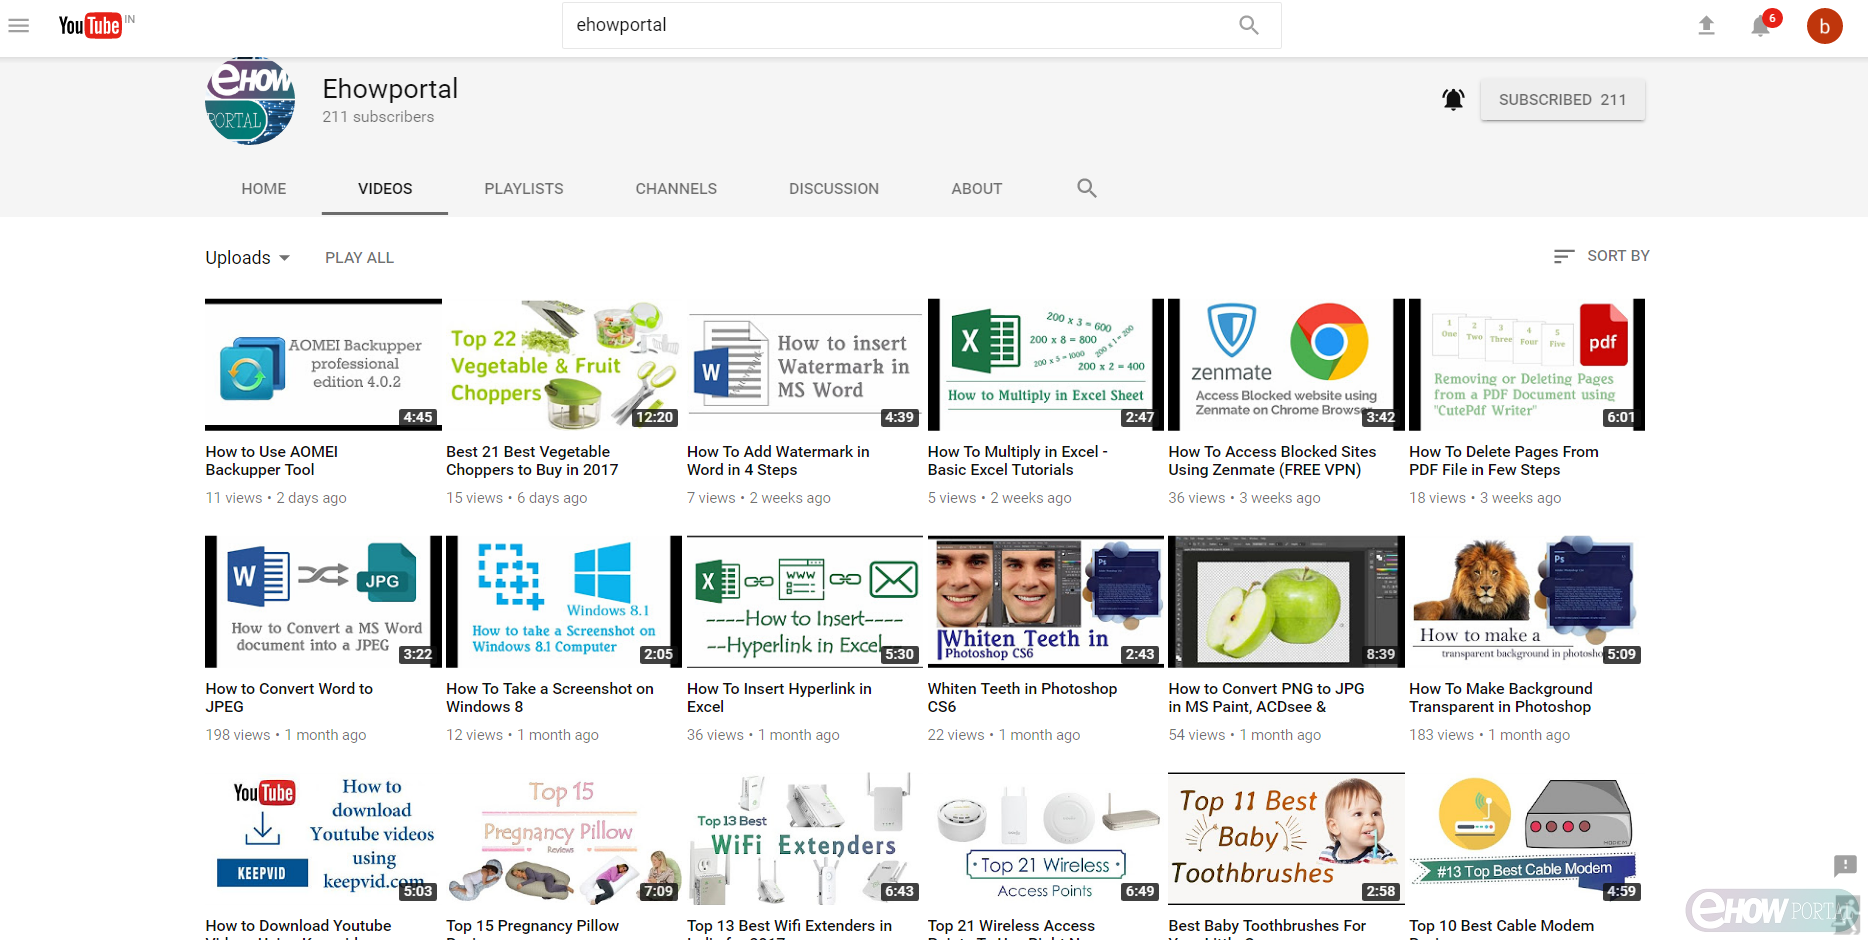 Youtube channel video page